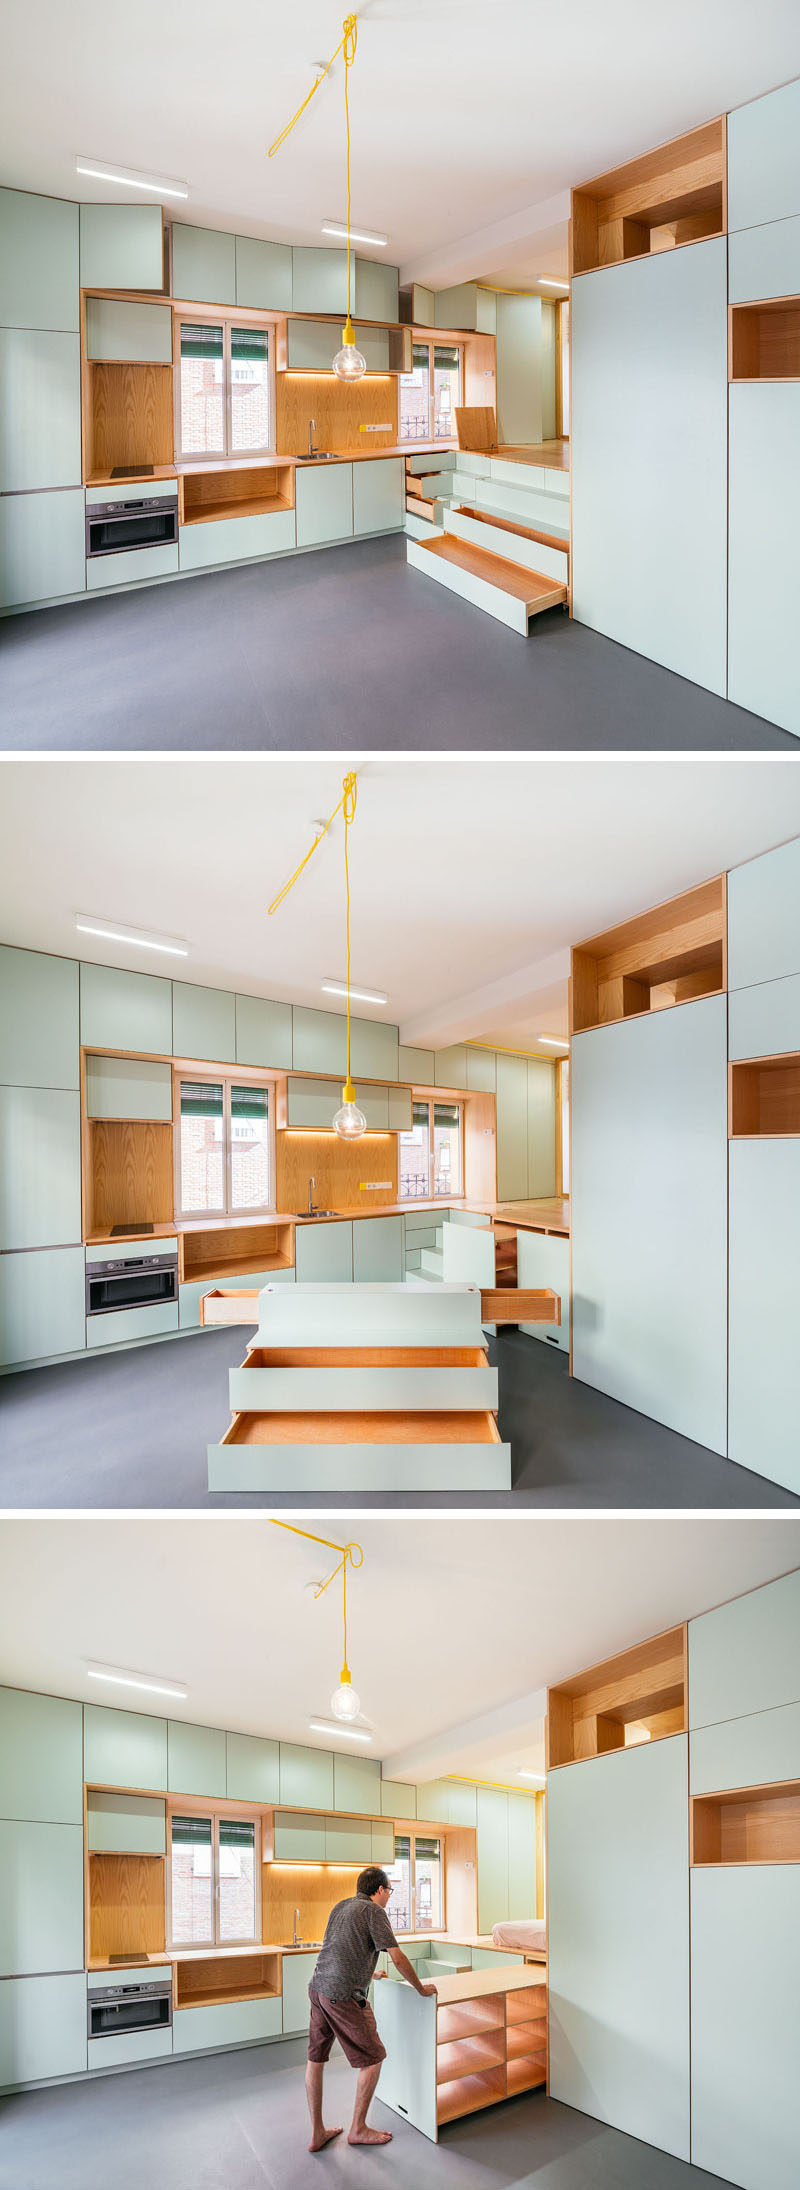 To create storage in this small and modern apartment, the bedroom area was raised and storage was hidden underneath it. #HiddenStorage #ModernApartment